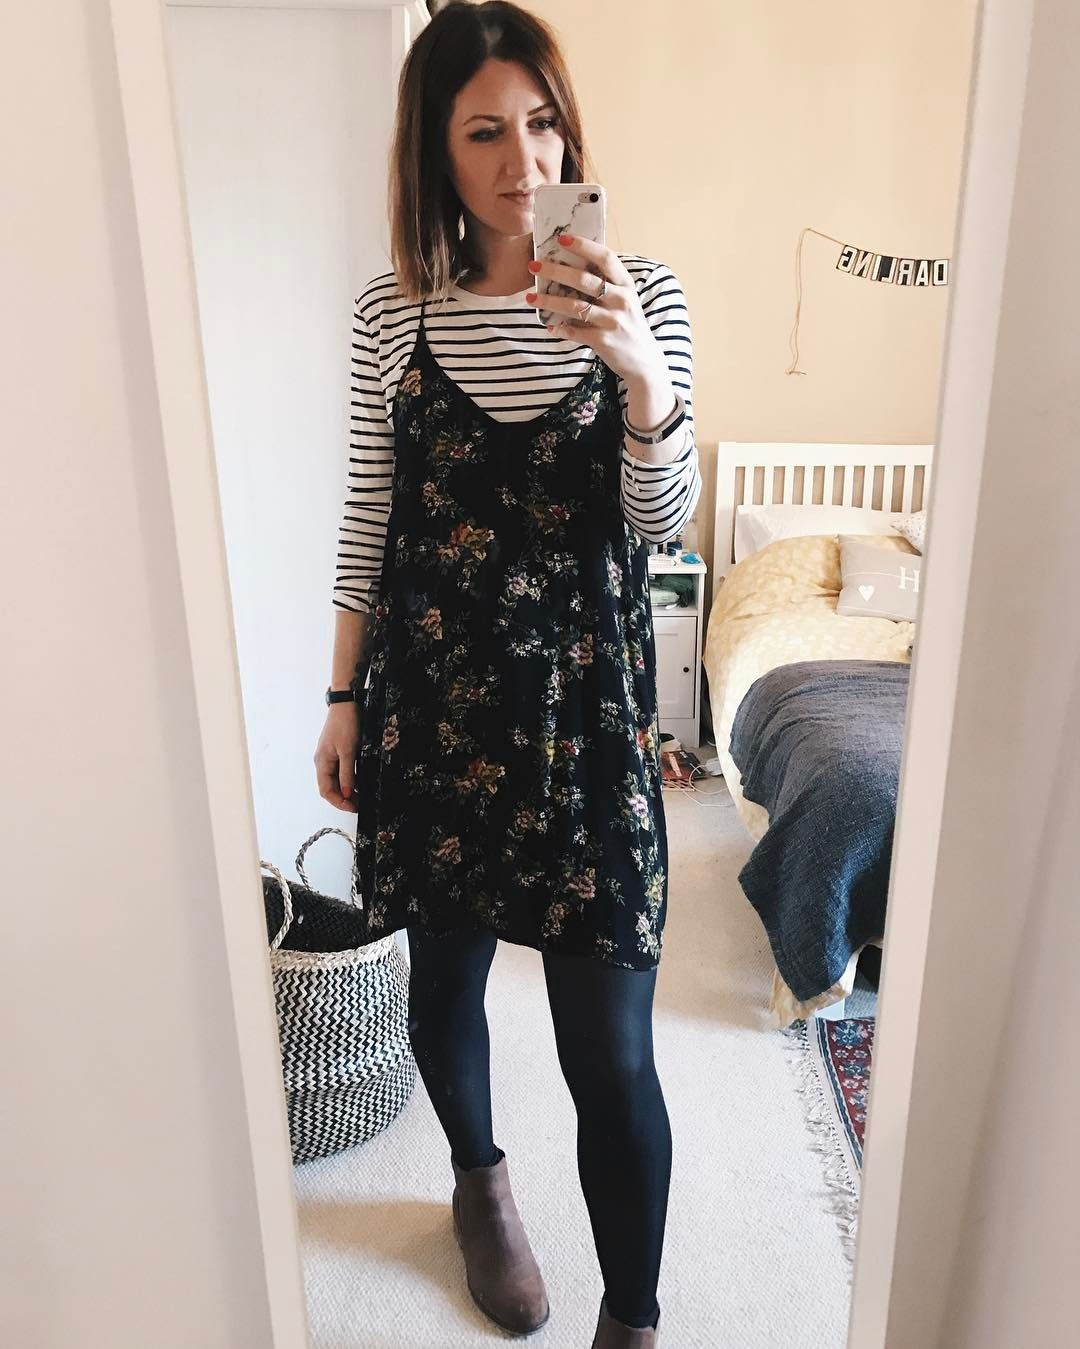 Layering. Floral slip dress by Urban Outfitters over a long sleeve strip top complete with tights and Boots. OOTD. Transition outfit - Hannah  (@hannahandtheblog) on Instagram